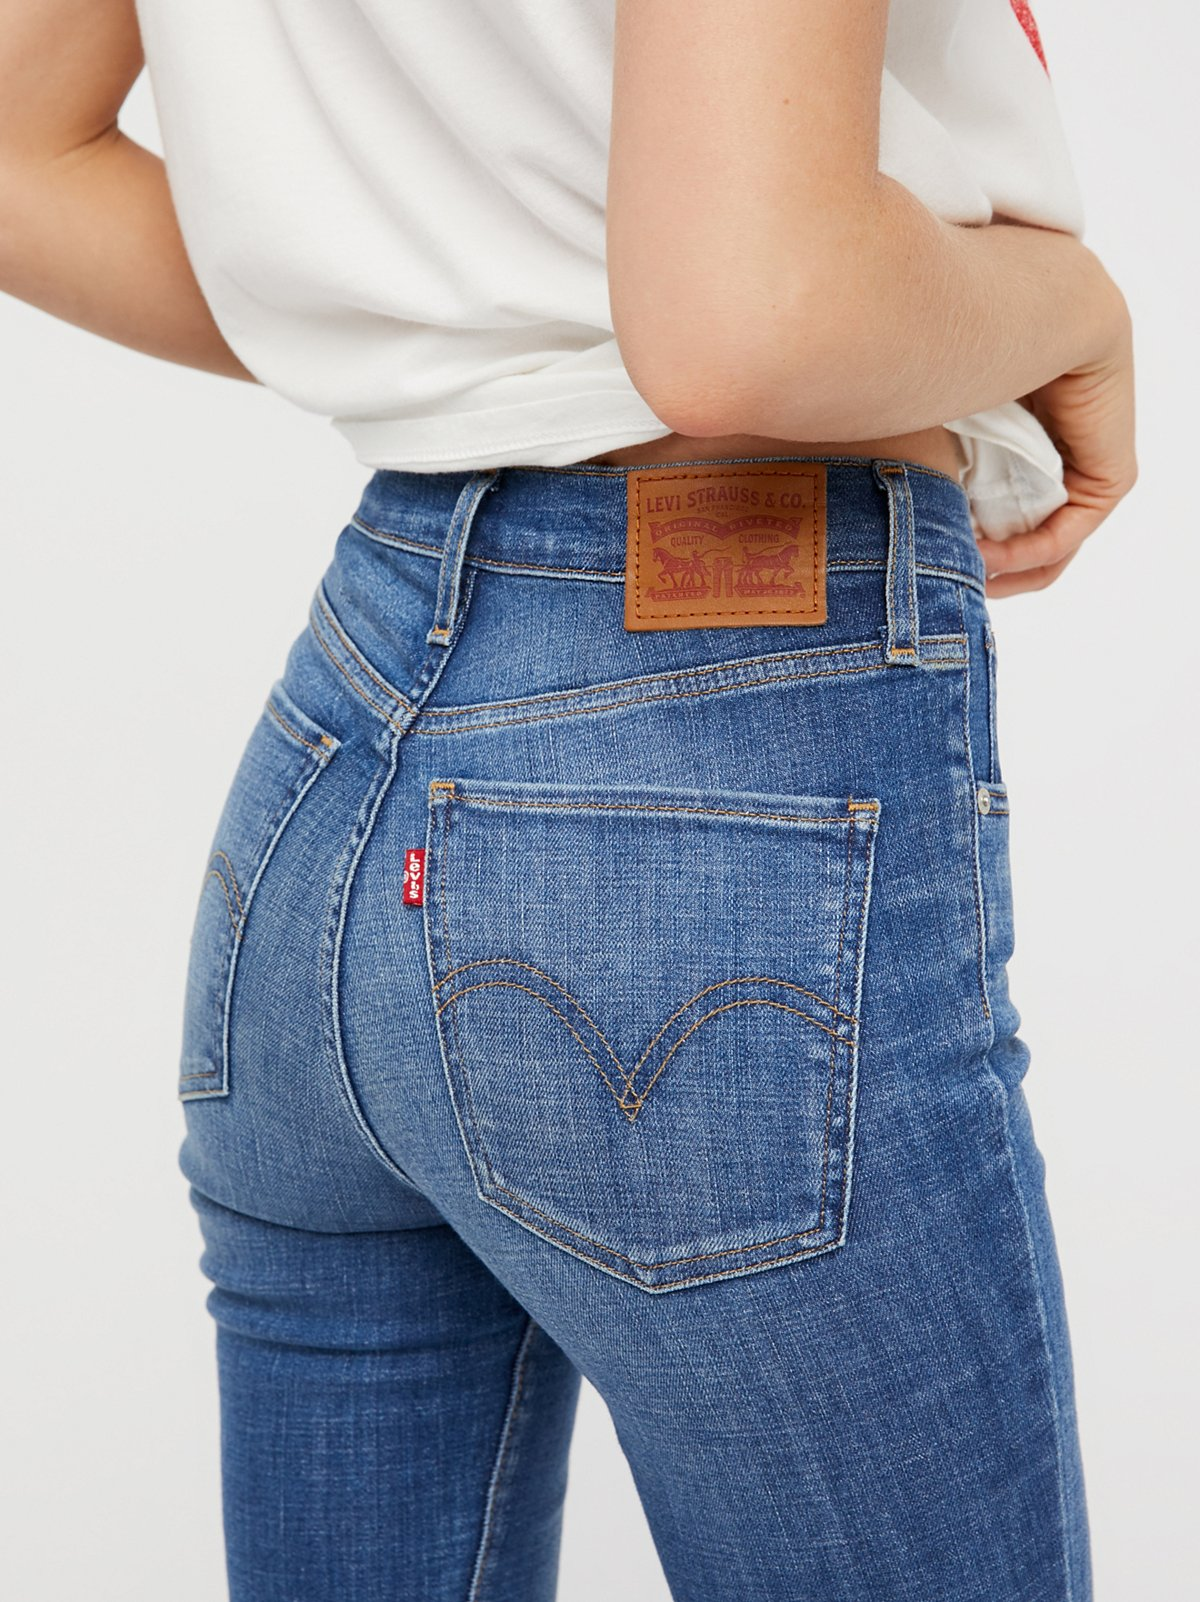 High Waisted Jeans - High Rise Jeans for Women   Free People